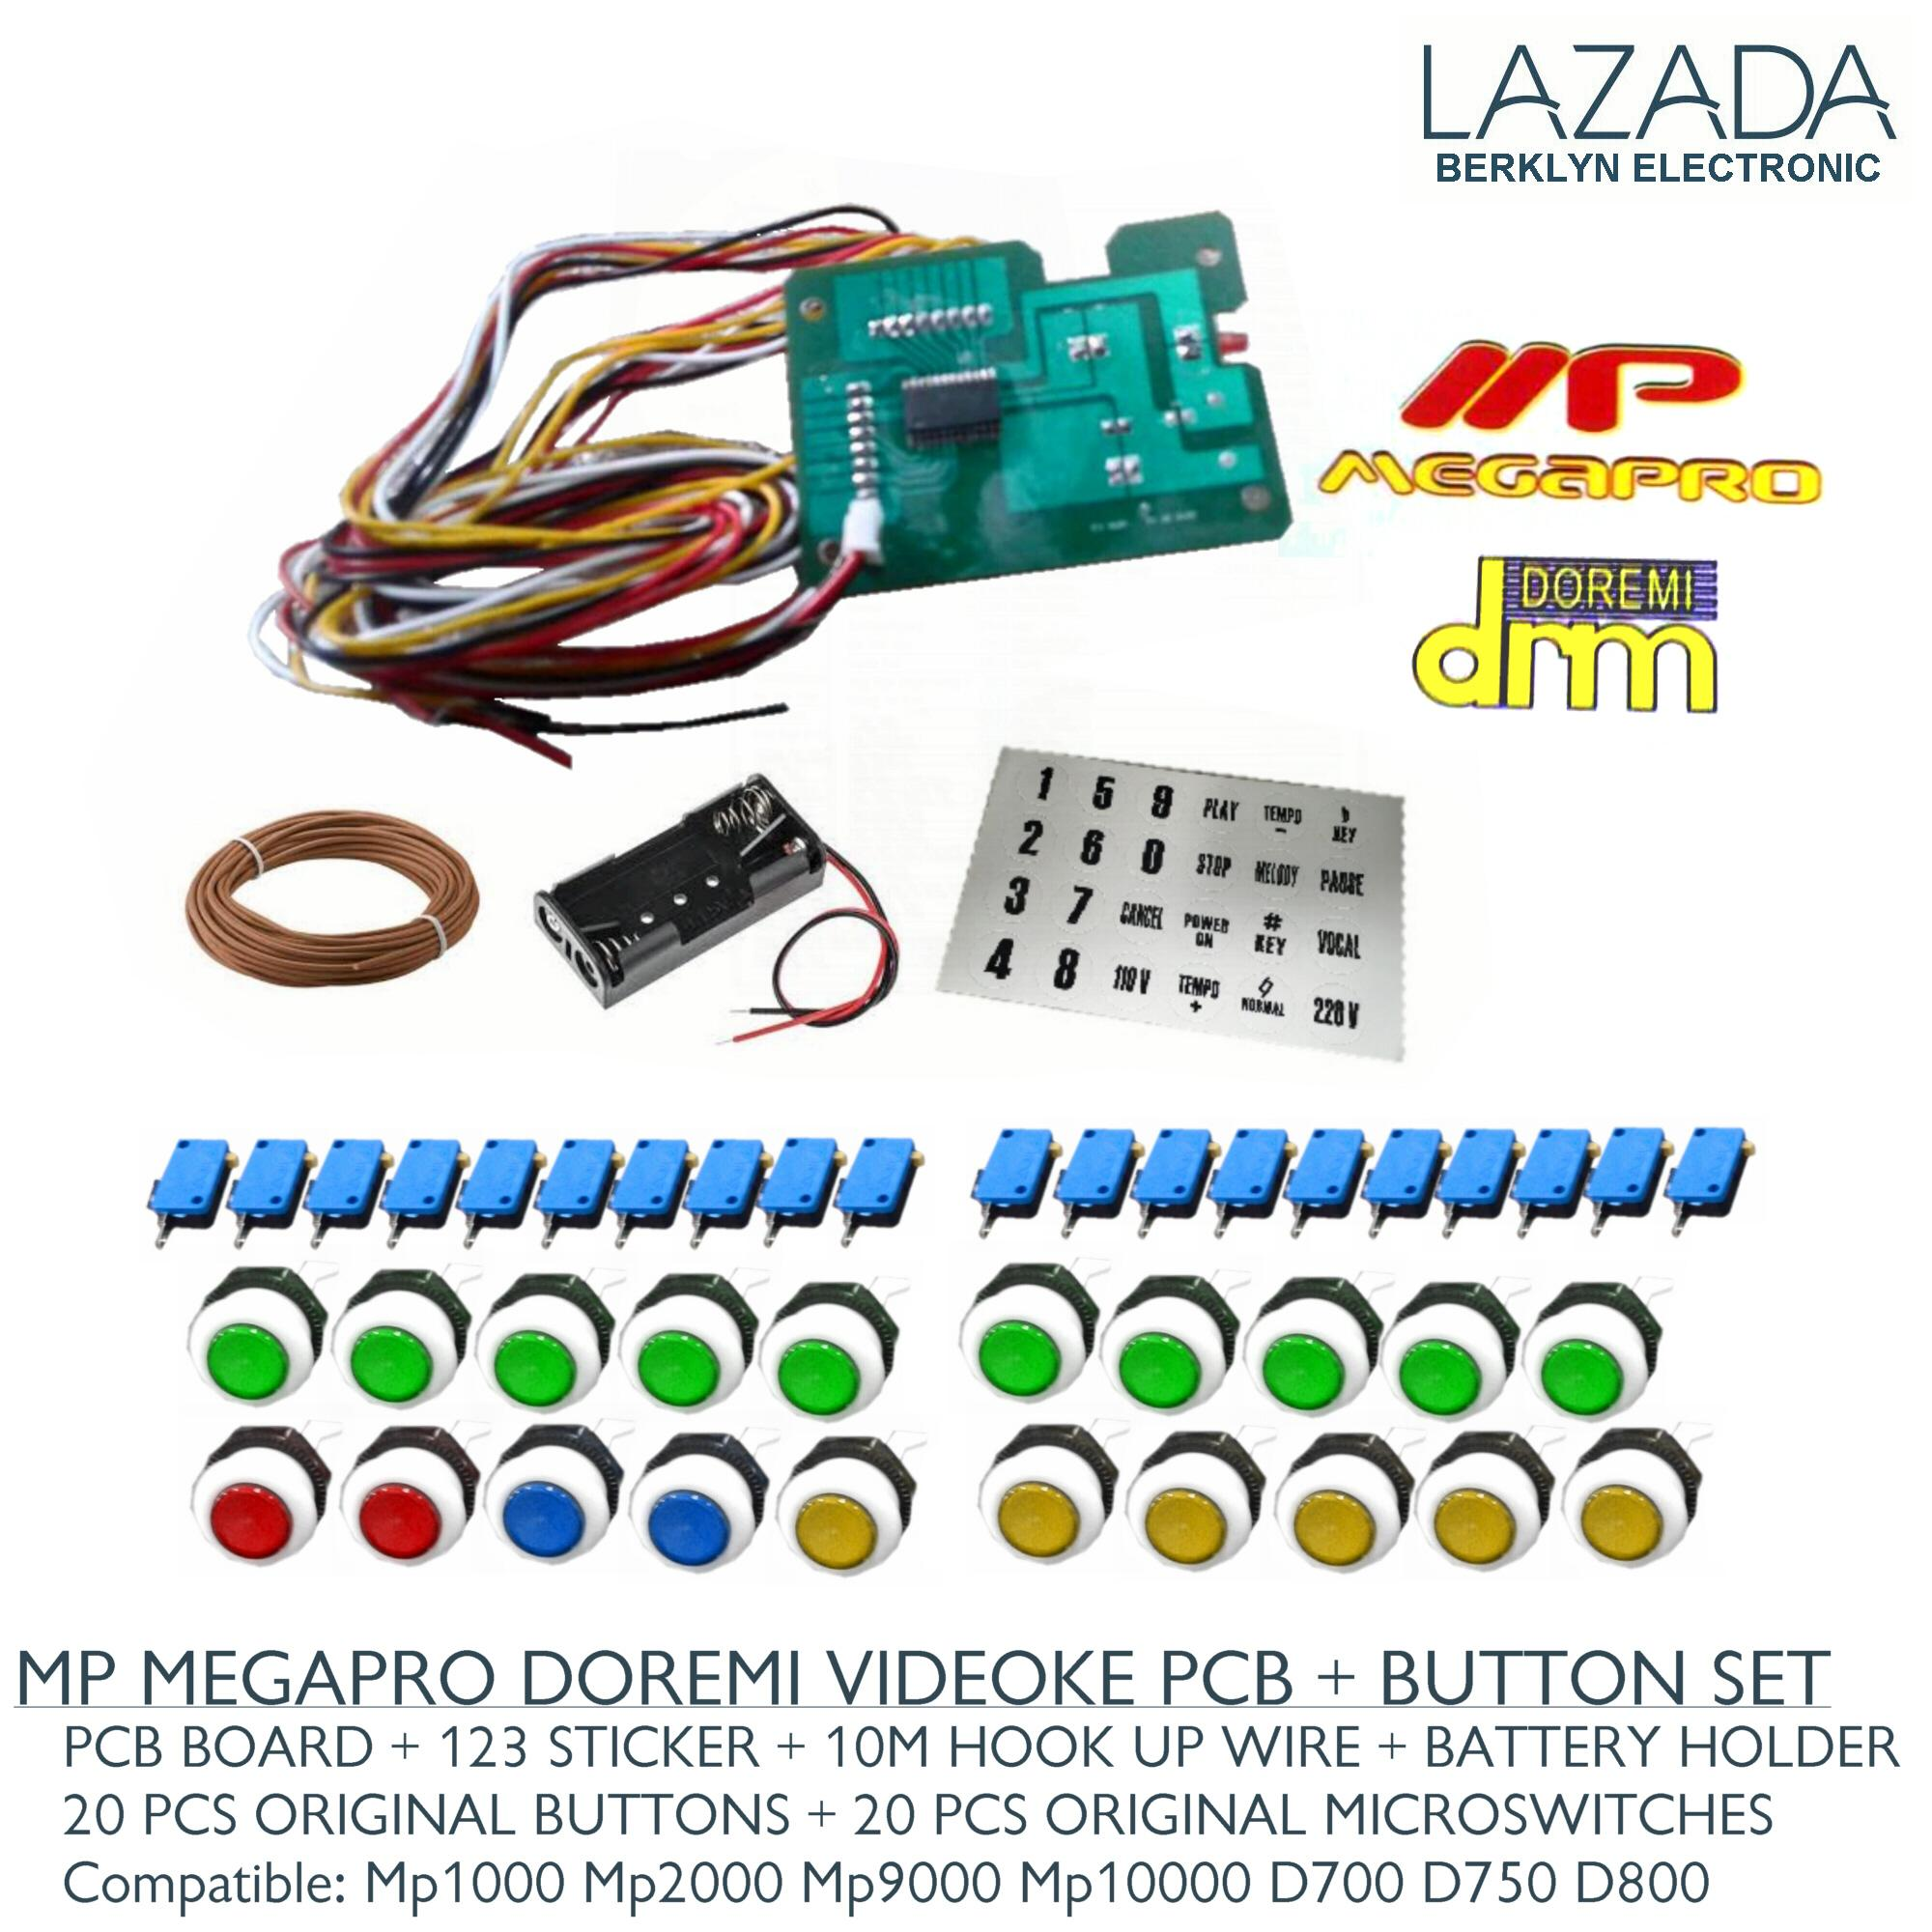 Pcb Remote Button Set For Videoke Machine Mp Megapro Doremi Wiring A Circuit Board Battery Holder Wire